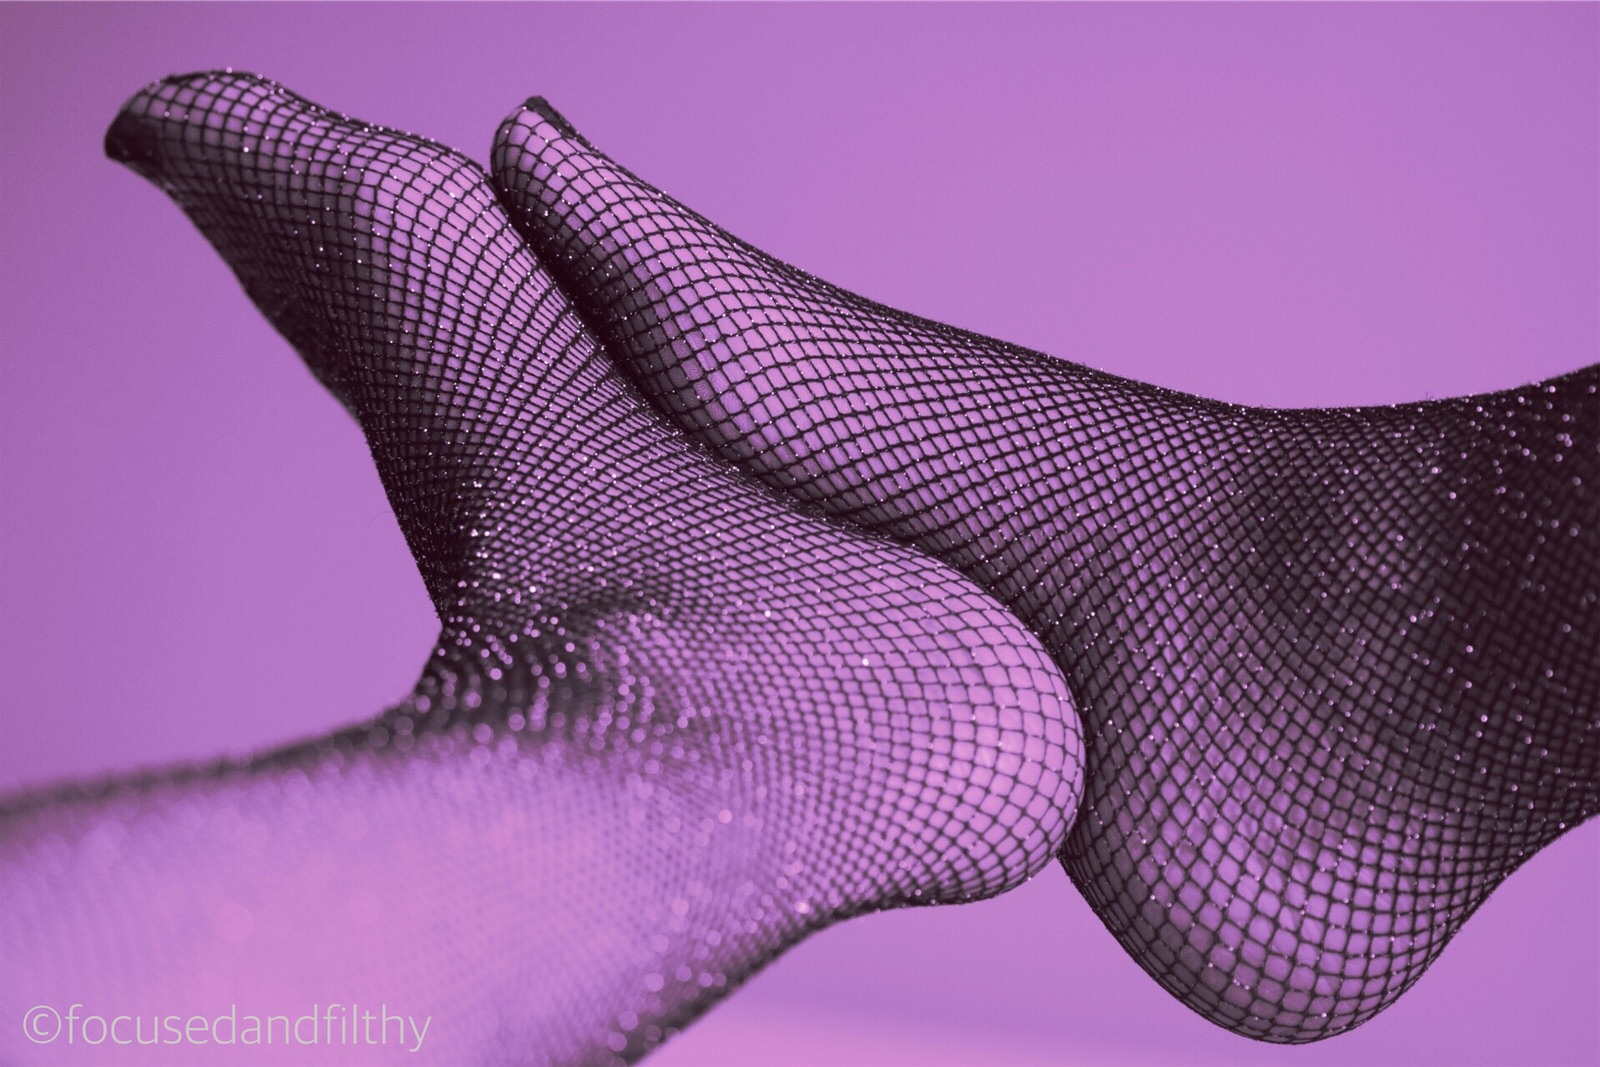 Photograph of two feet pressed together in sparkly fishnet stockings. The editing has the whole image looking quite purple